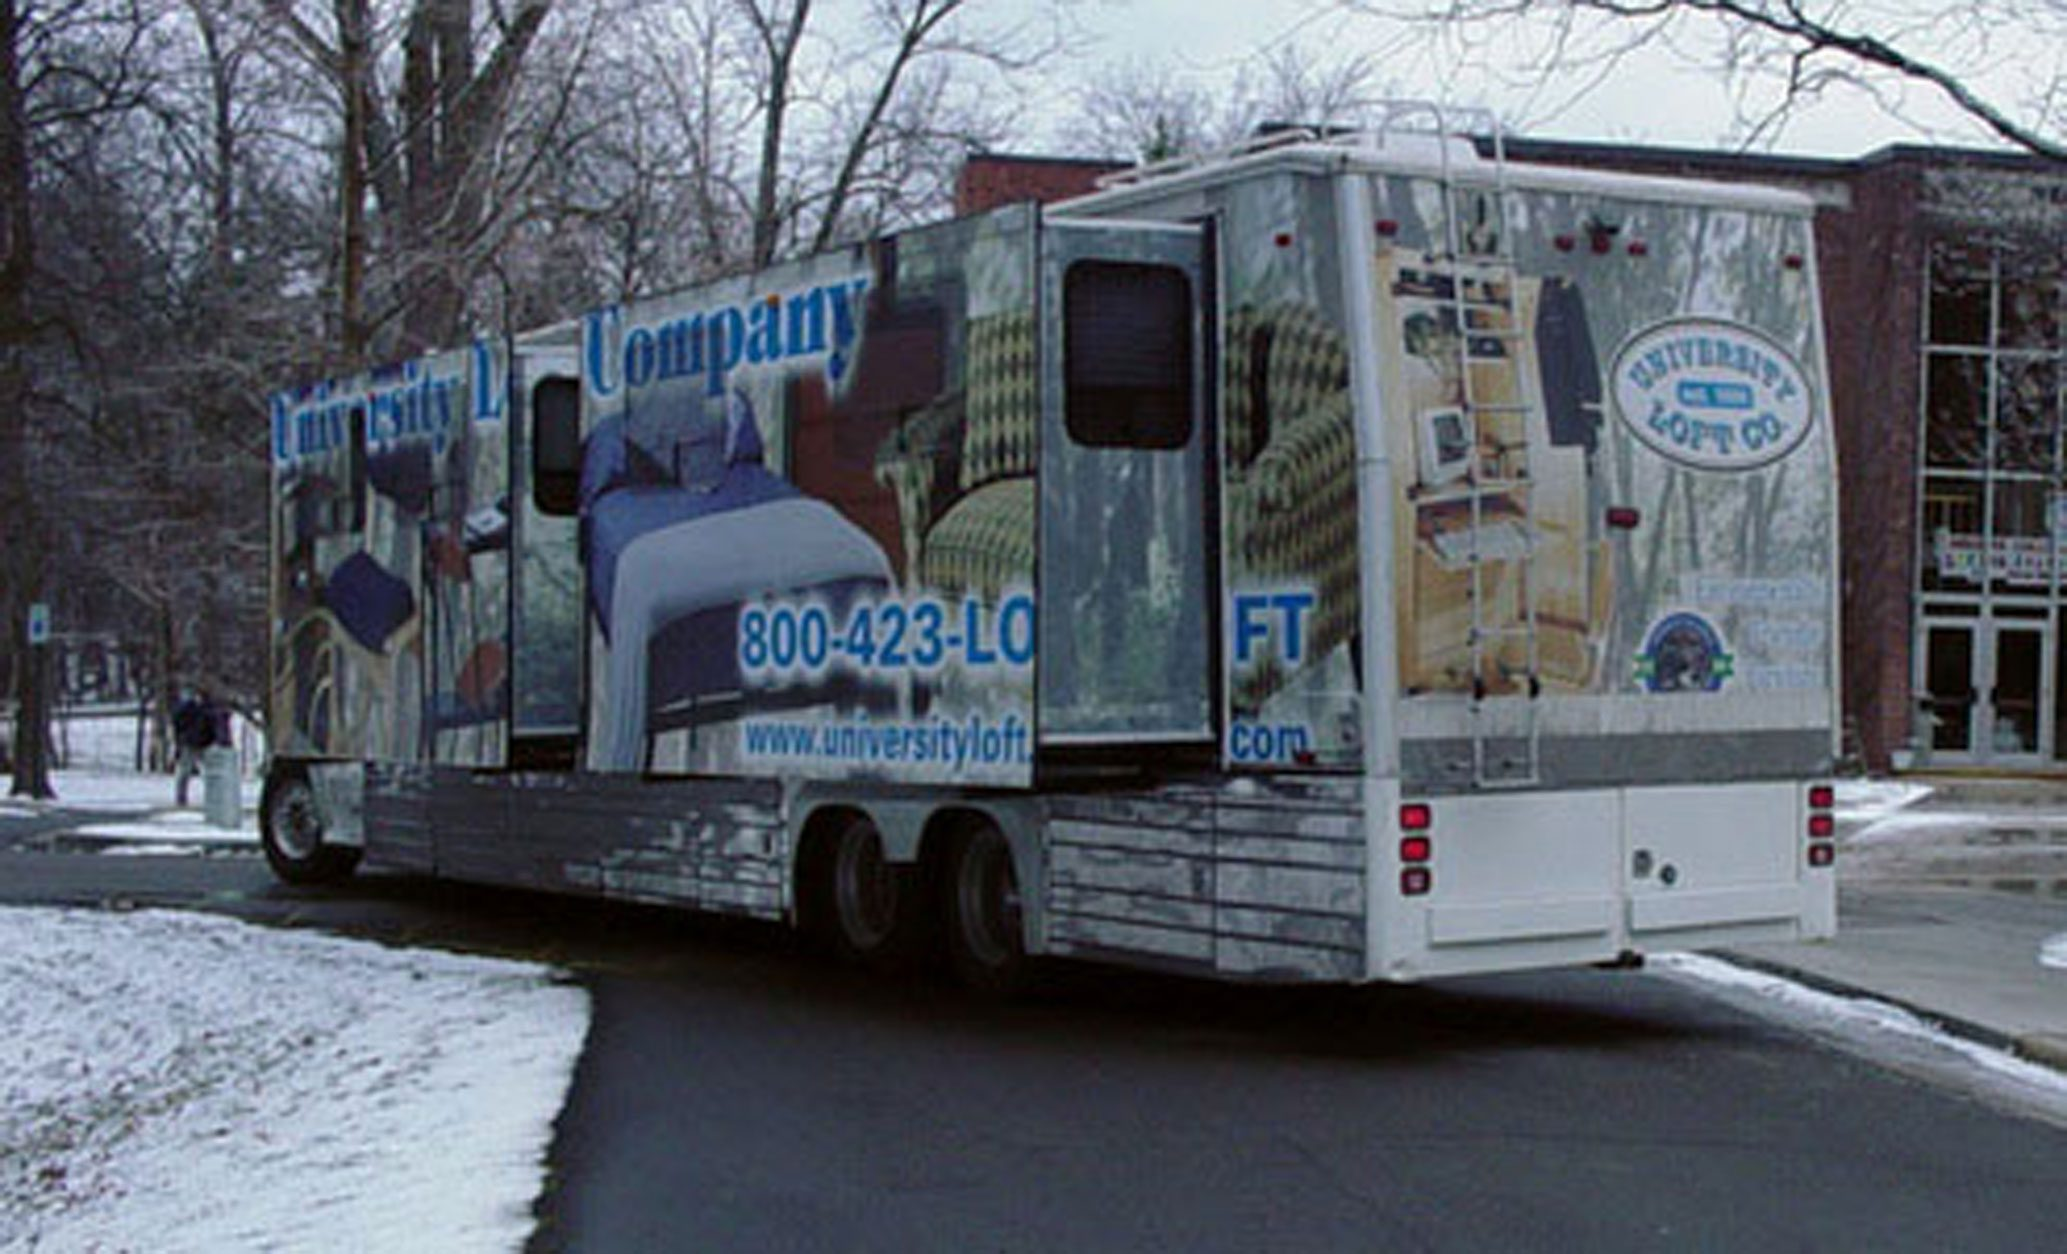 Second Mobile Showroom